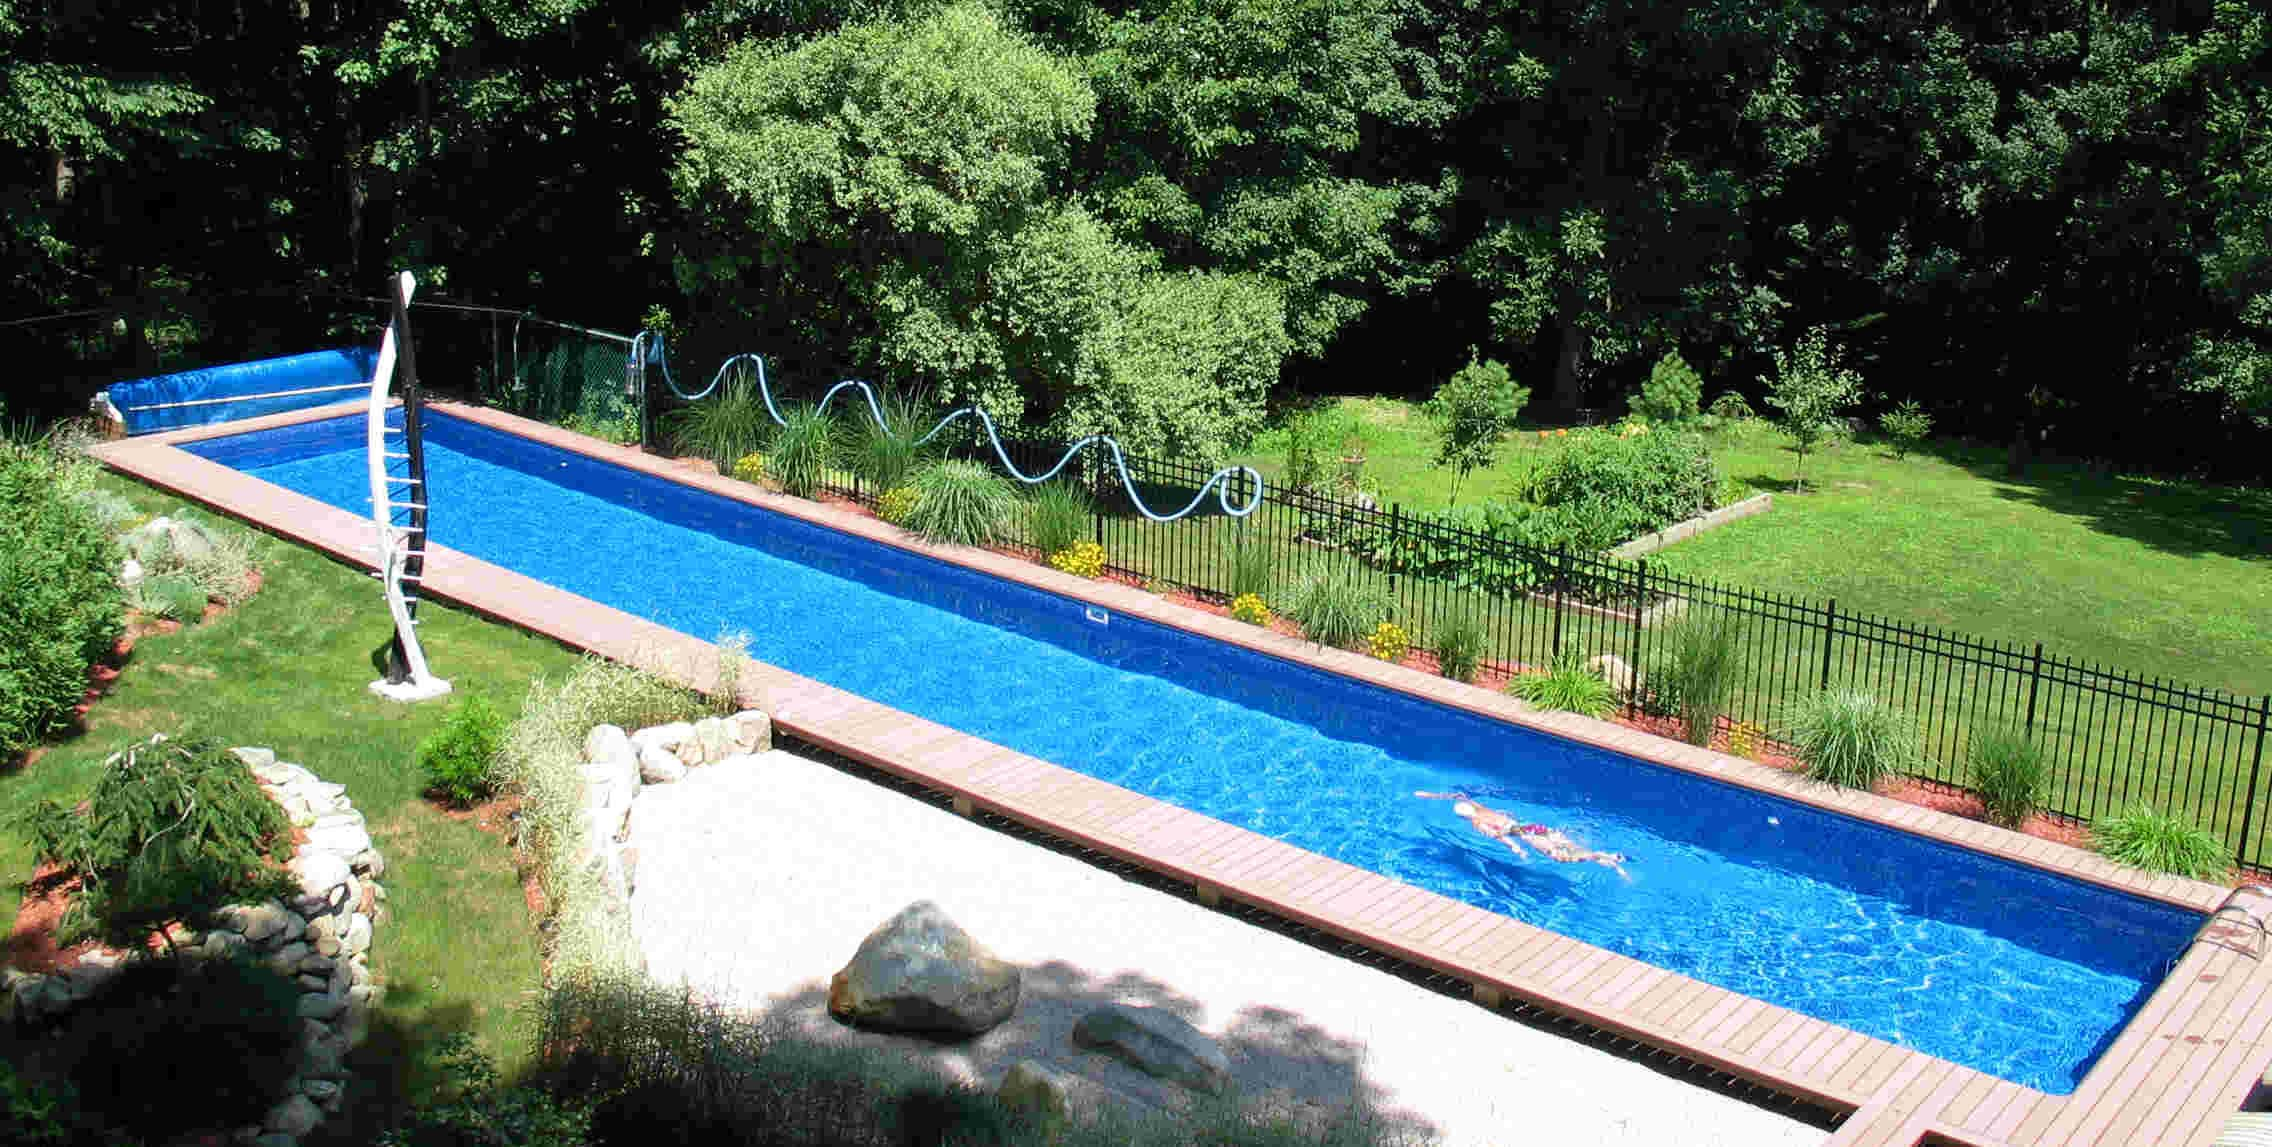 Diy inground swimming pool backyard design ideas for Garden pool plans